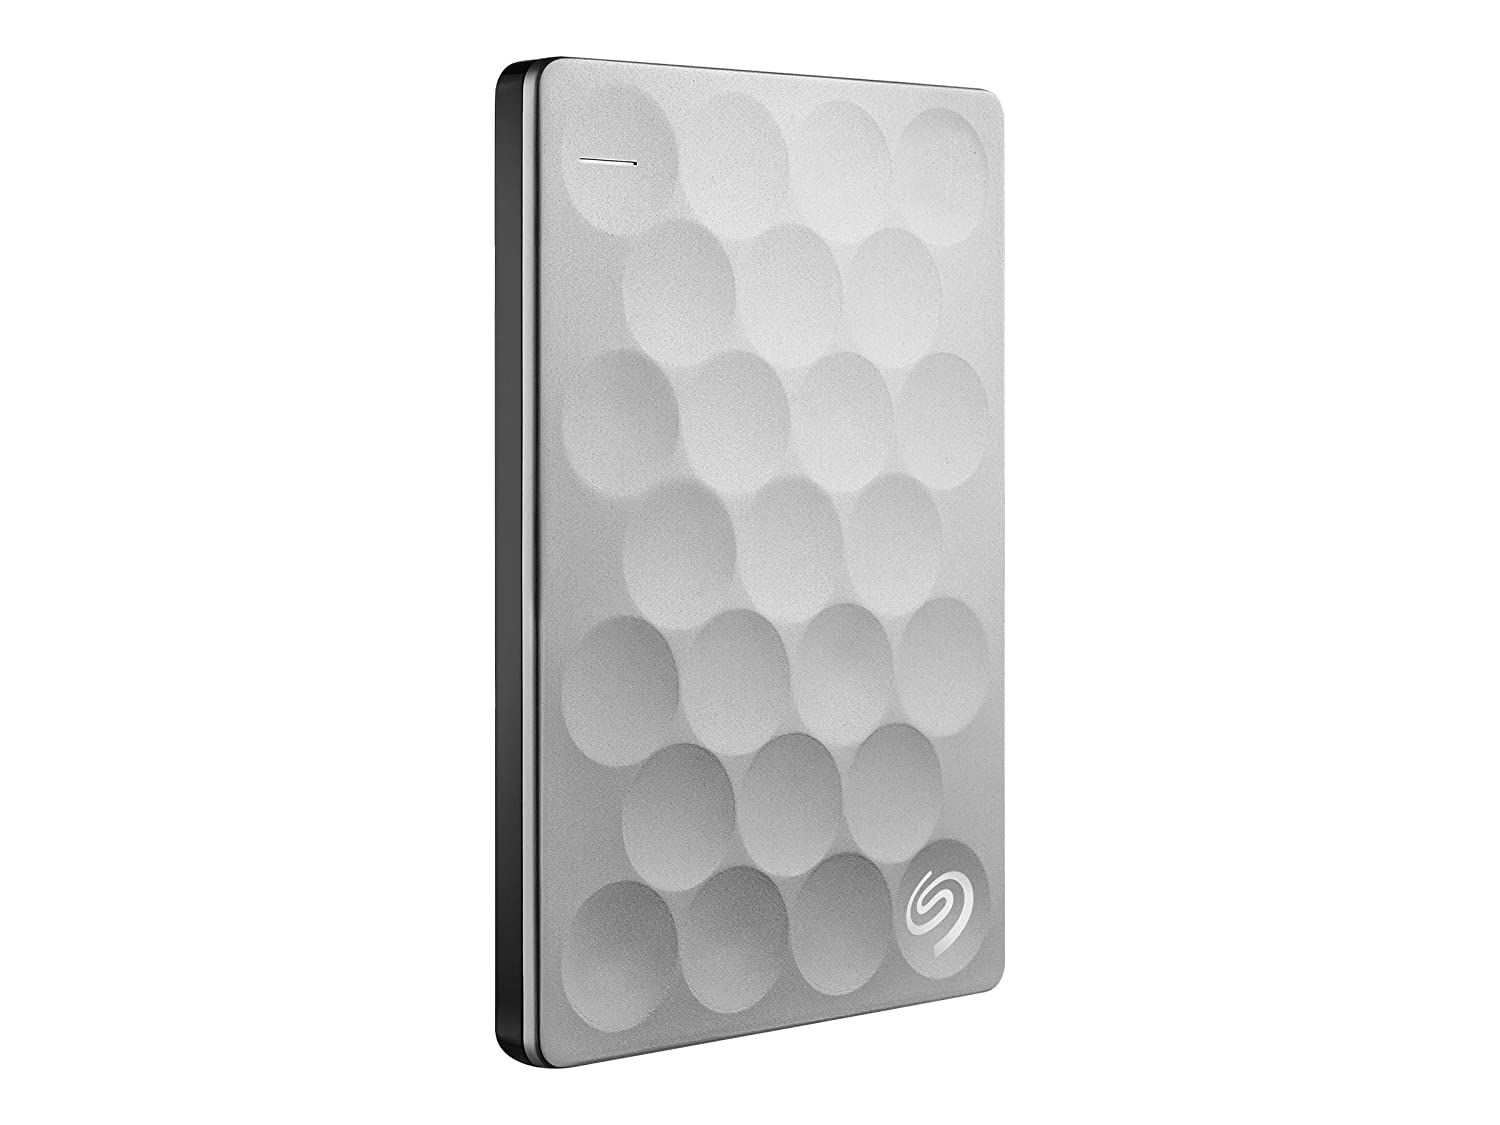 Seagate Backup Plus Ultra Silm 1TB External Hard Drive Portable HDD –  Platinum USB 3 0 for PC Laptop and Mac, 2 Months Adobe CC Photography